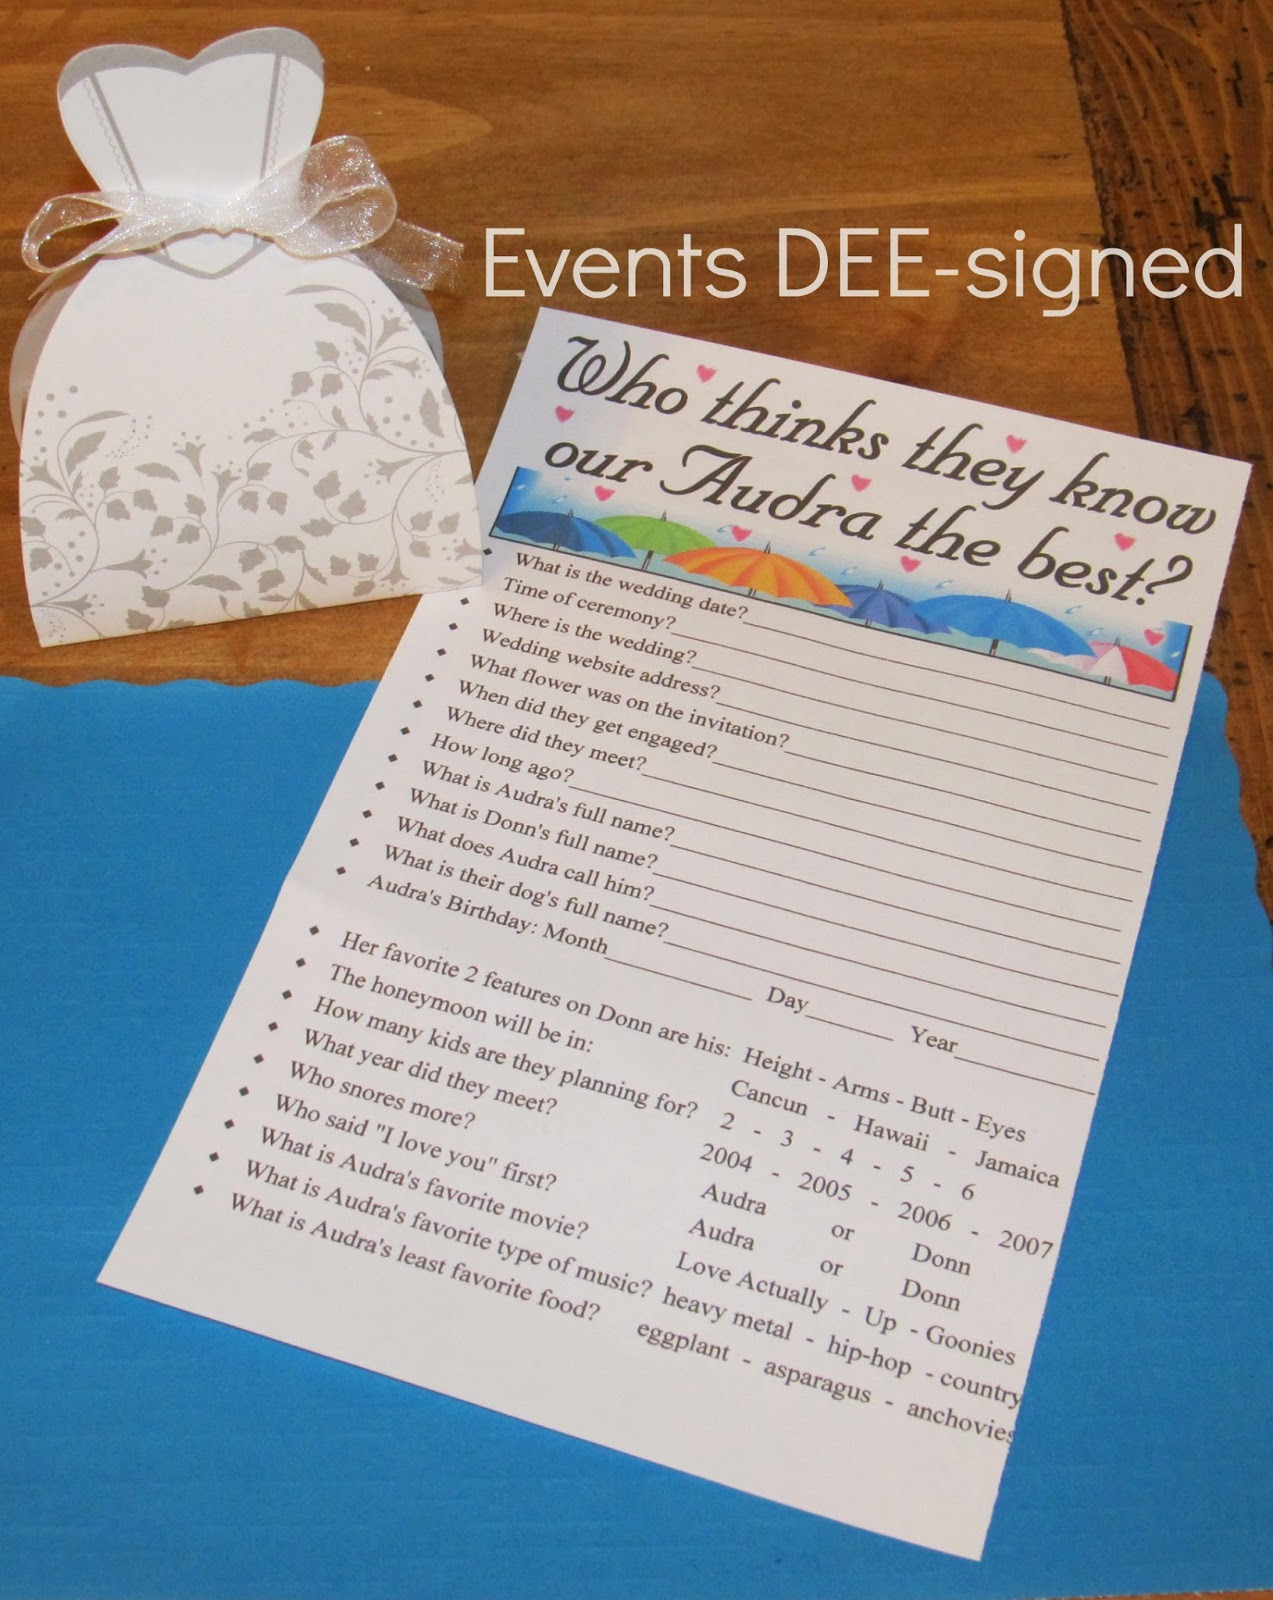 EventsDEE-signed bridal shower game wedding planning